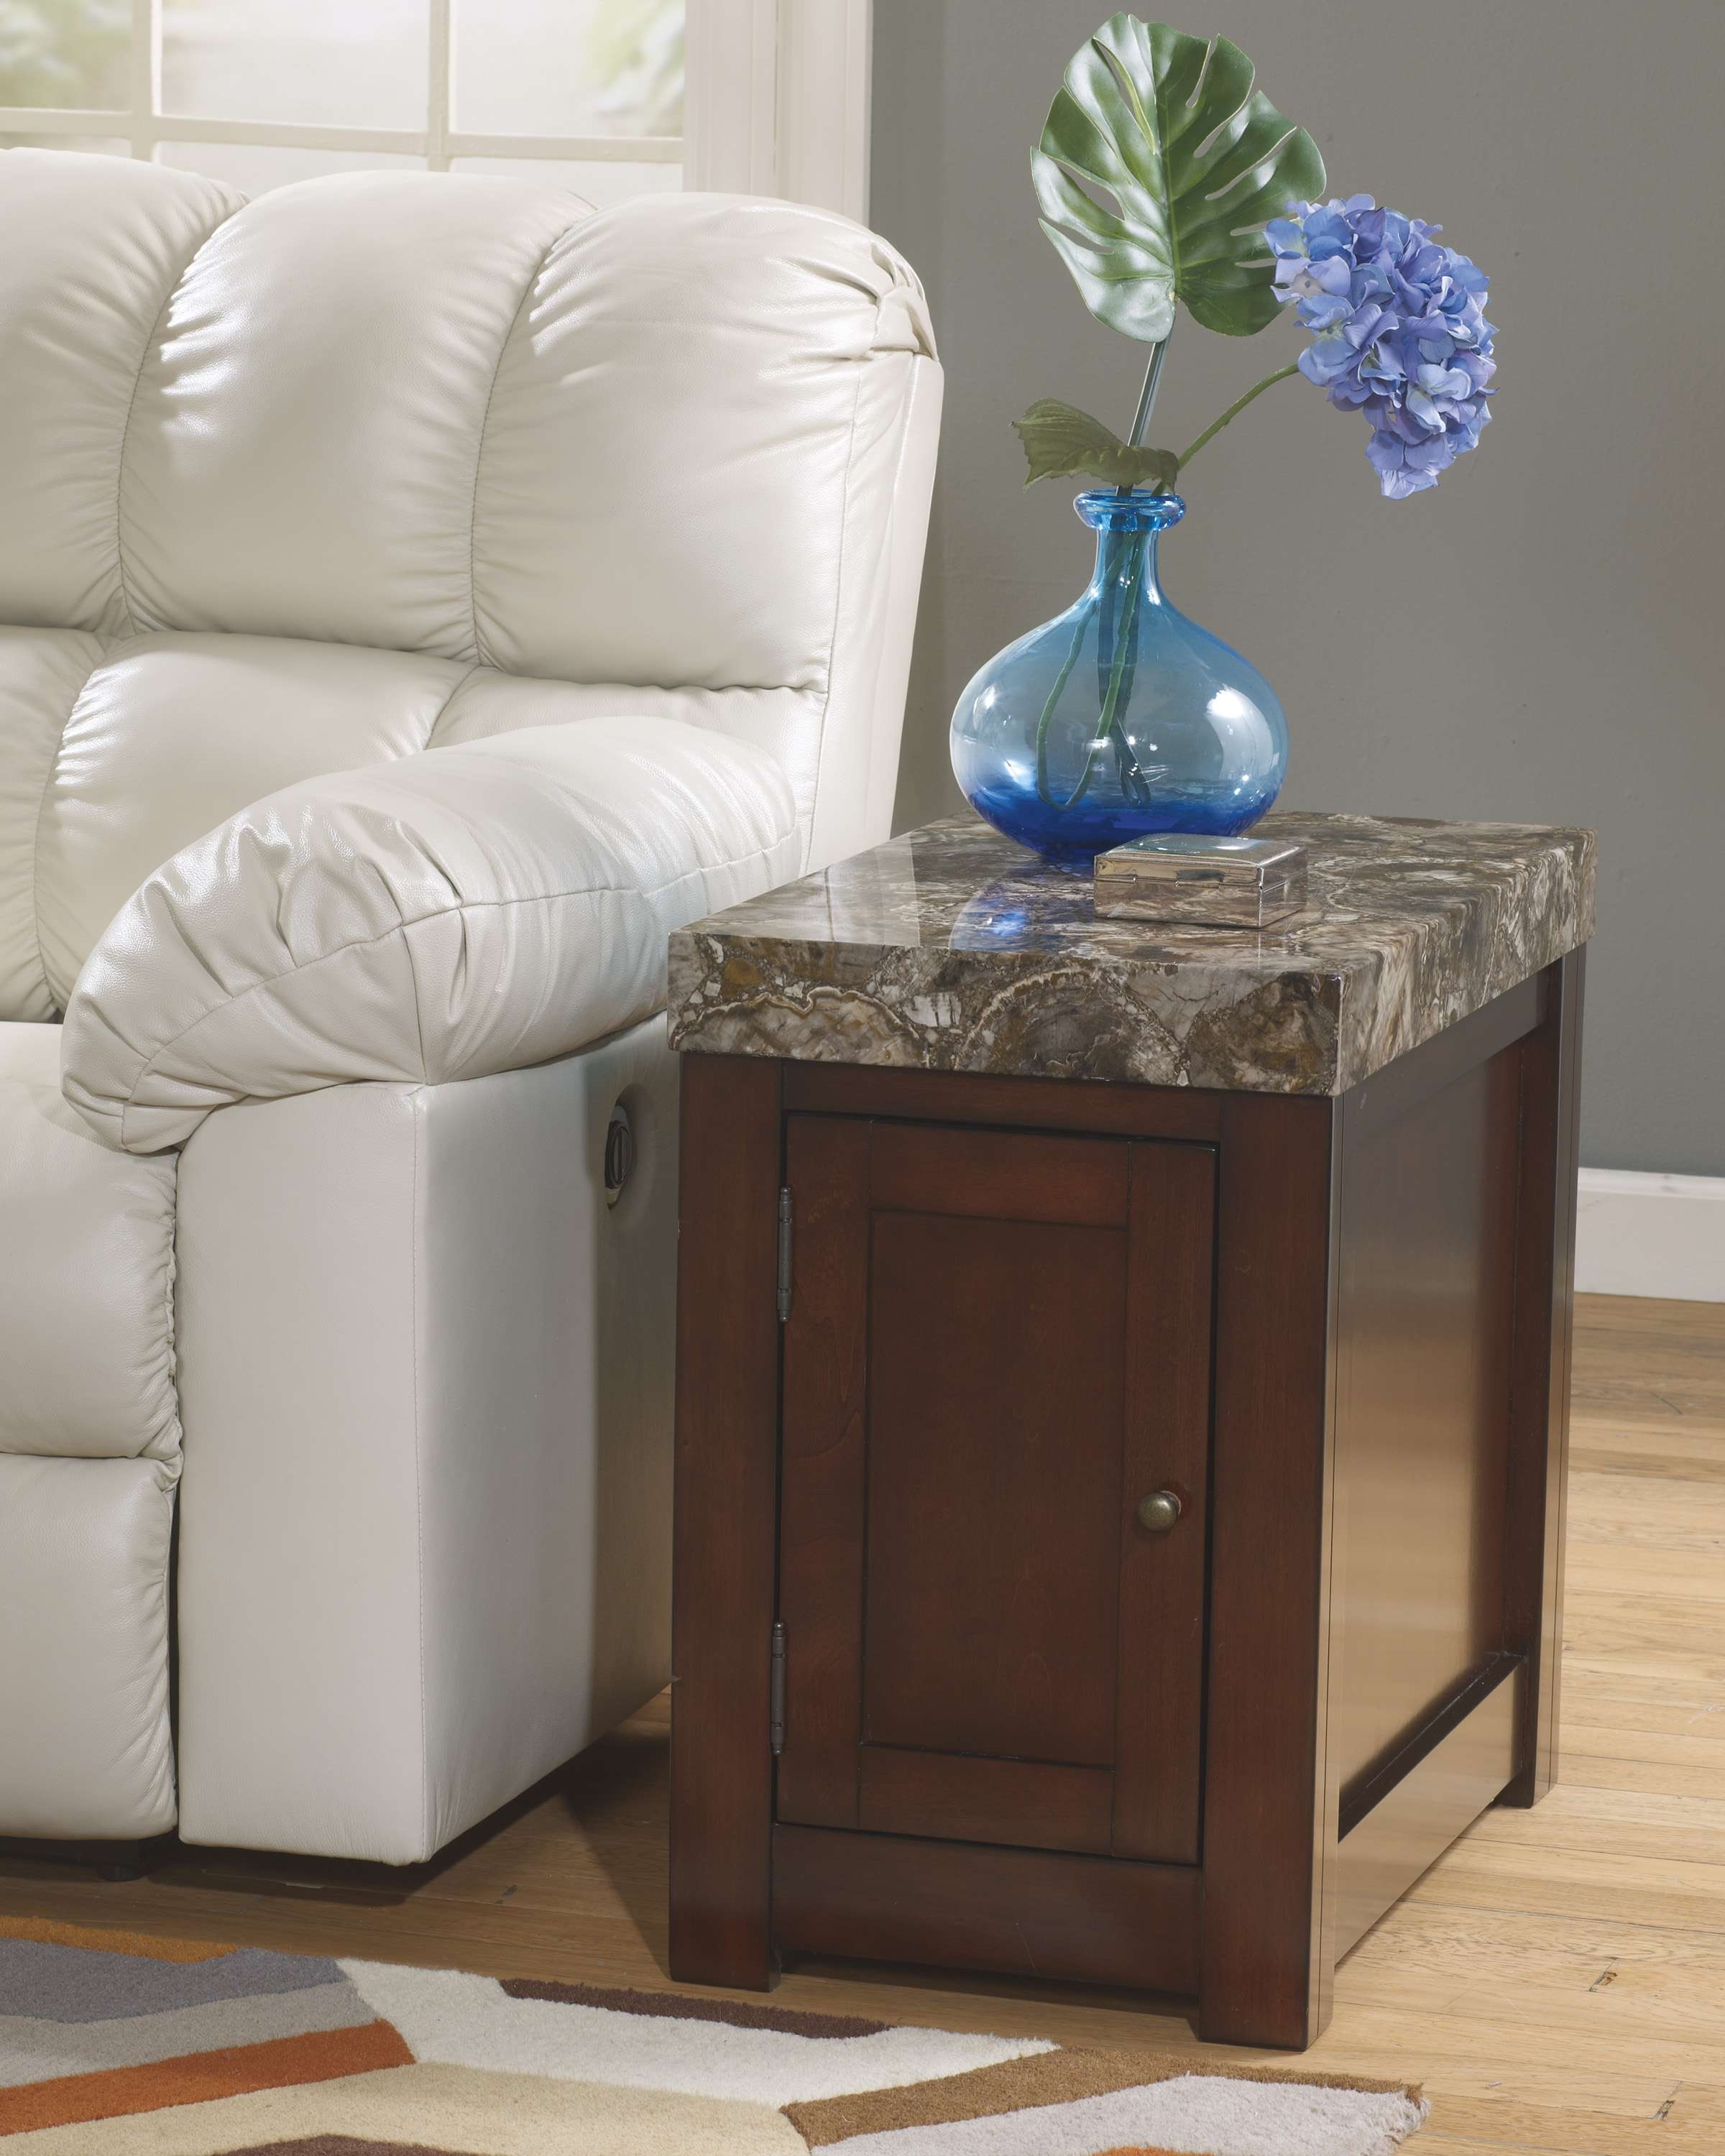 Latest Stone And Glass Coffee Tables Intended For Faux Stone Coffee Table Tags : Fabulous Coffee Table With Stone (View 14 of 20)